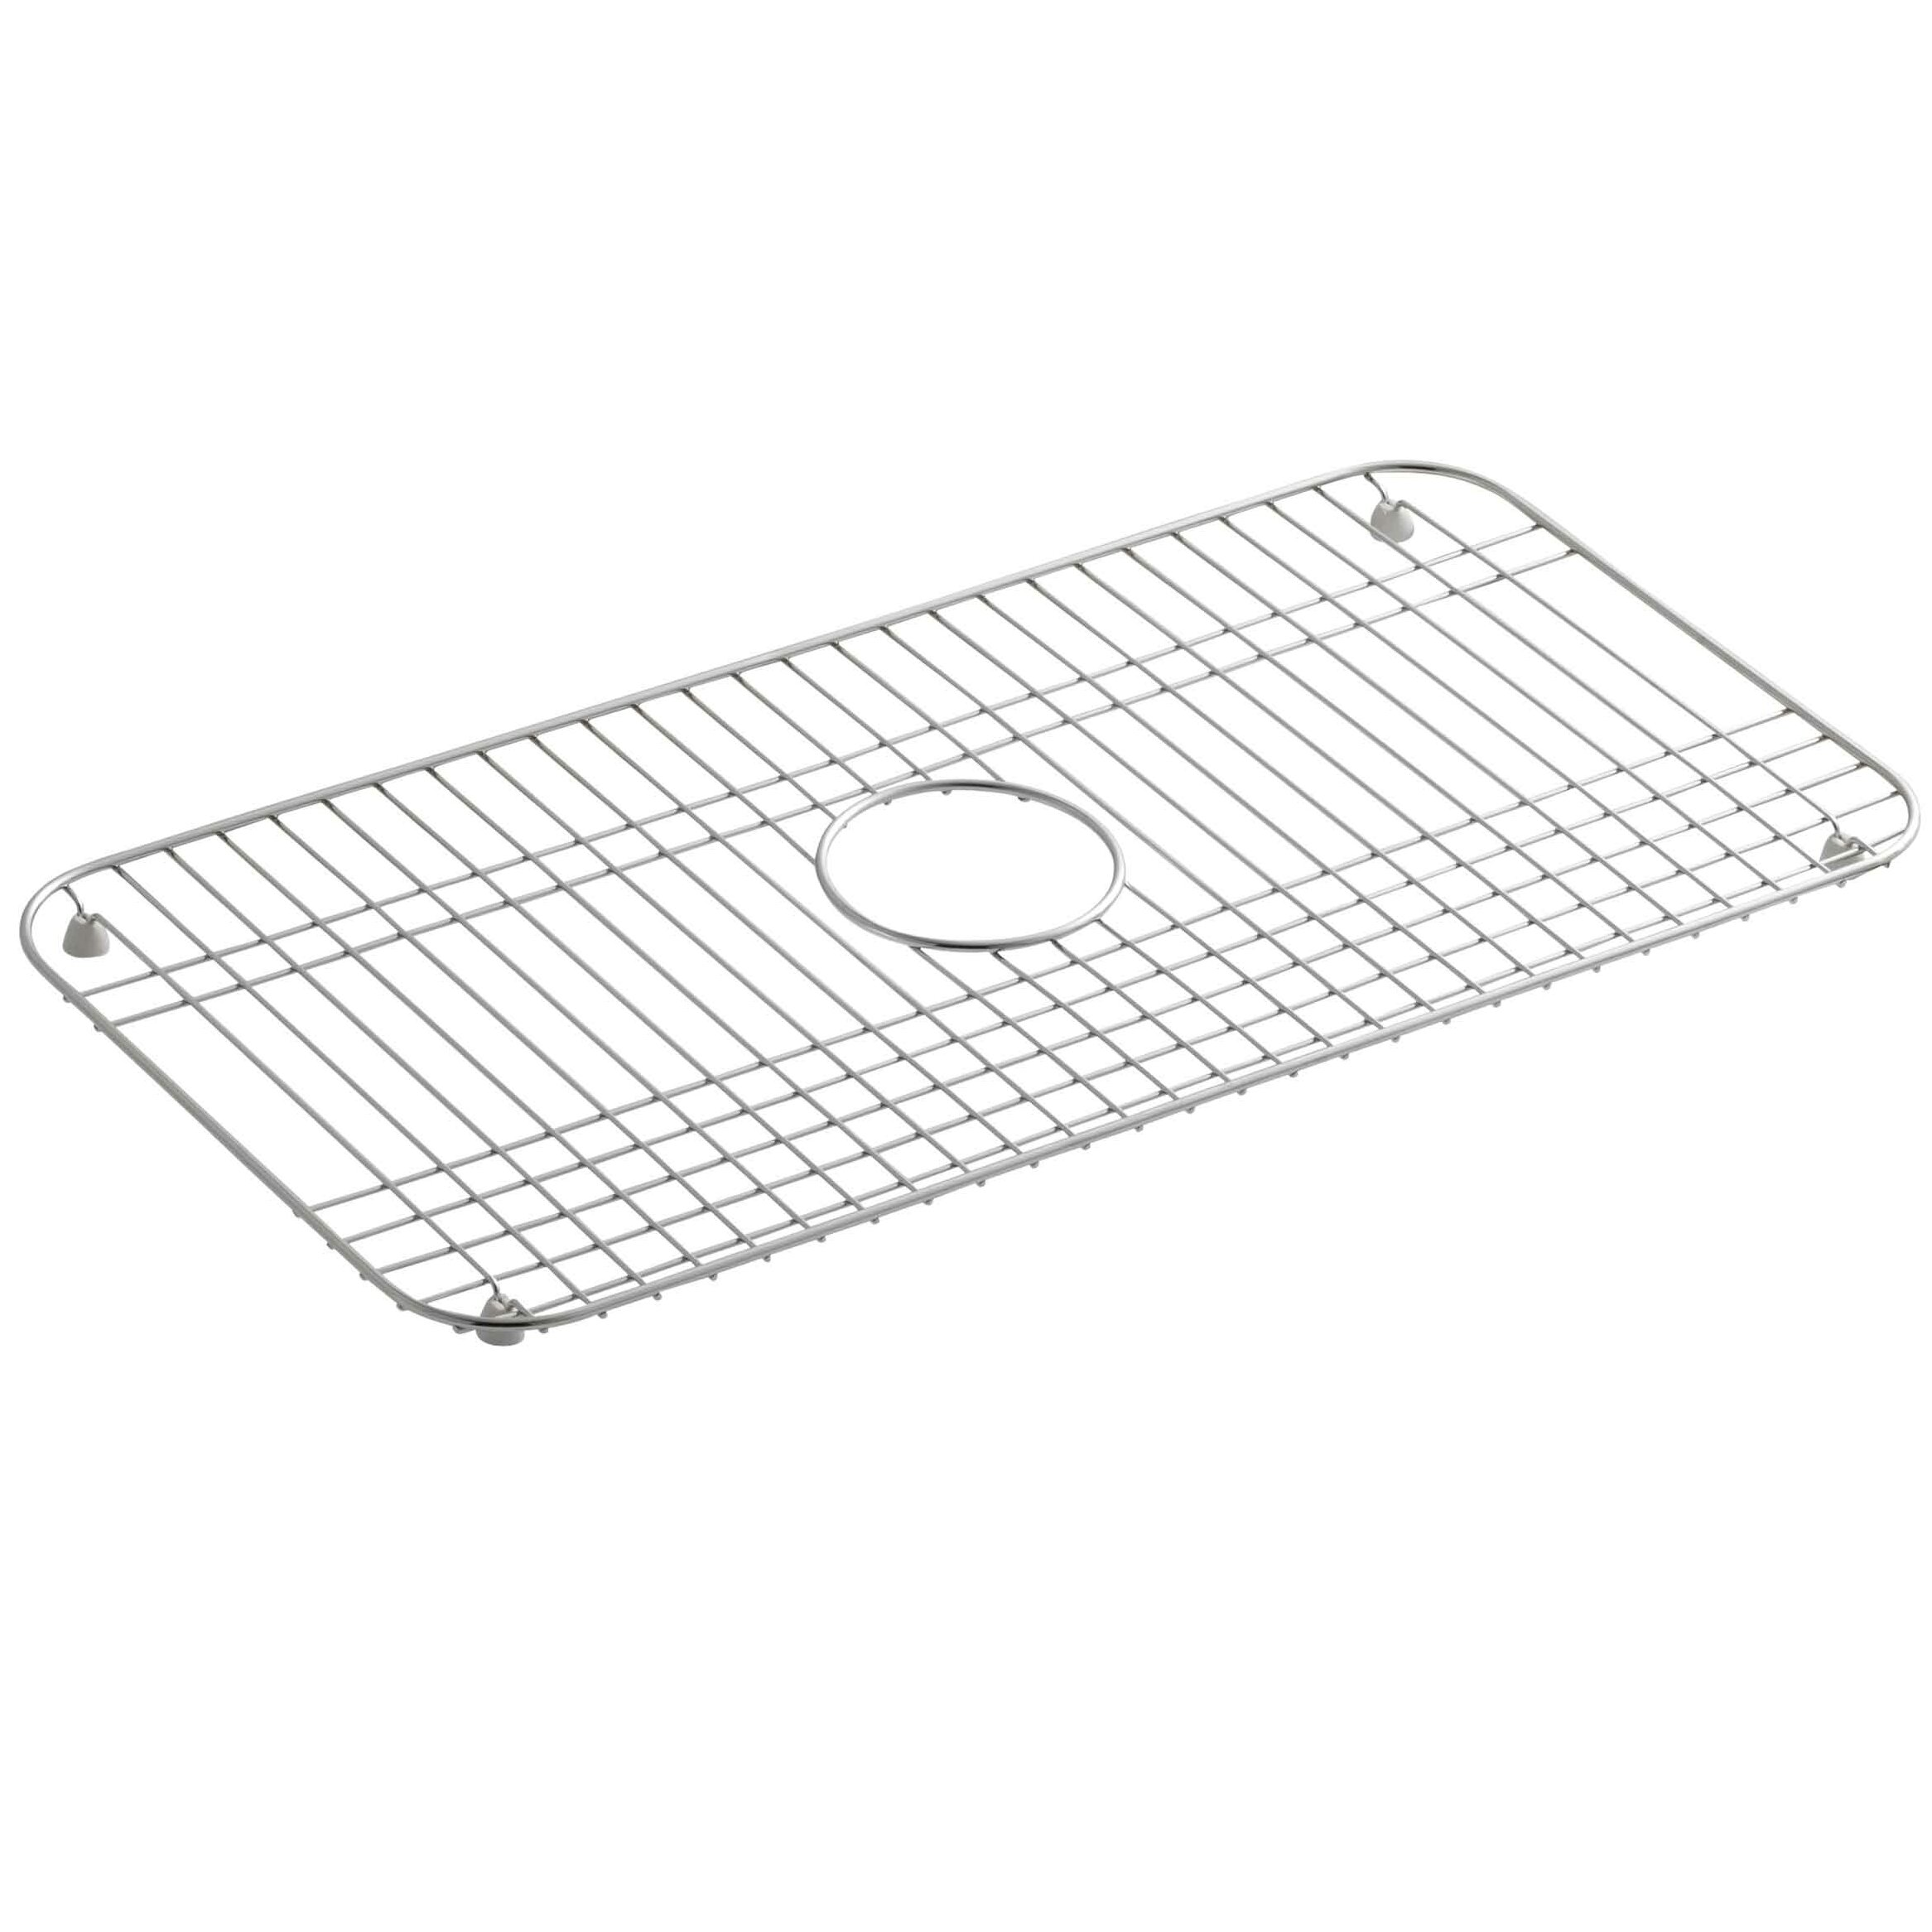 Sink grids youll love bakersfield stainless steel sink rack 25 x 12 34 workwithnaturefo